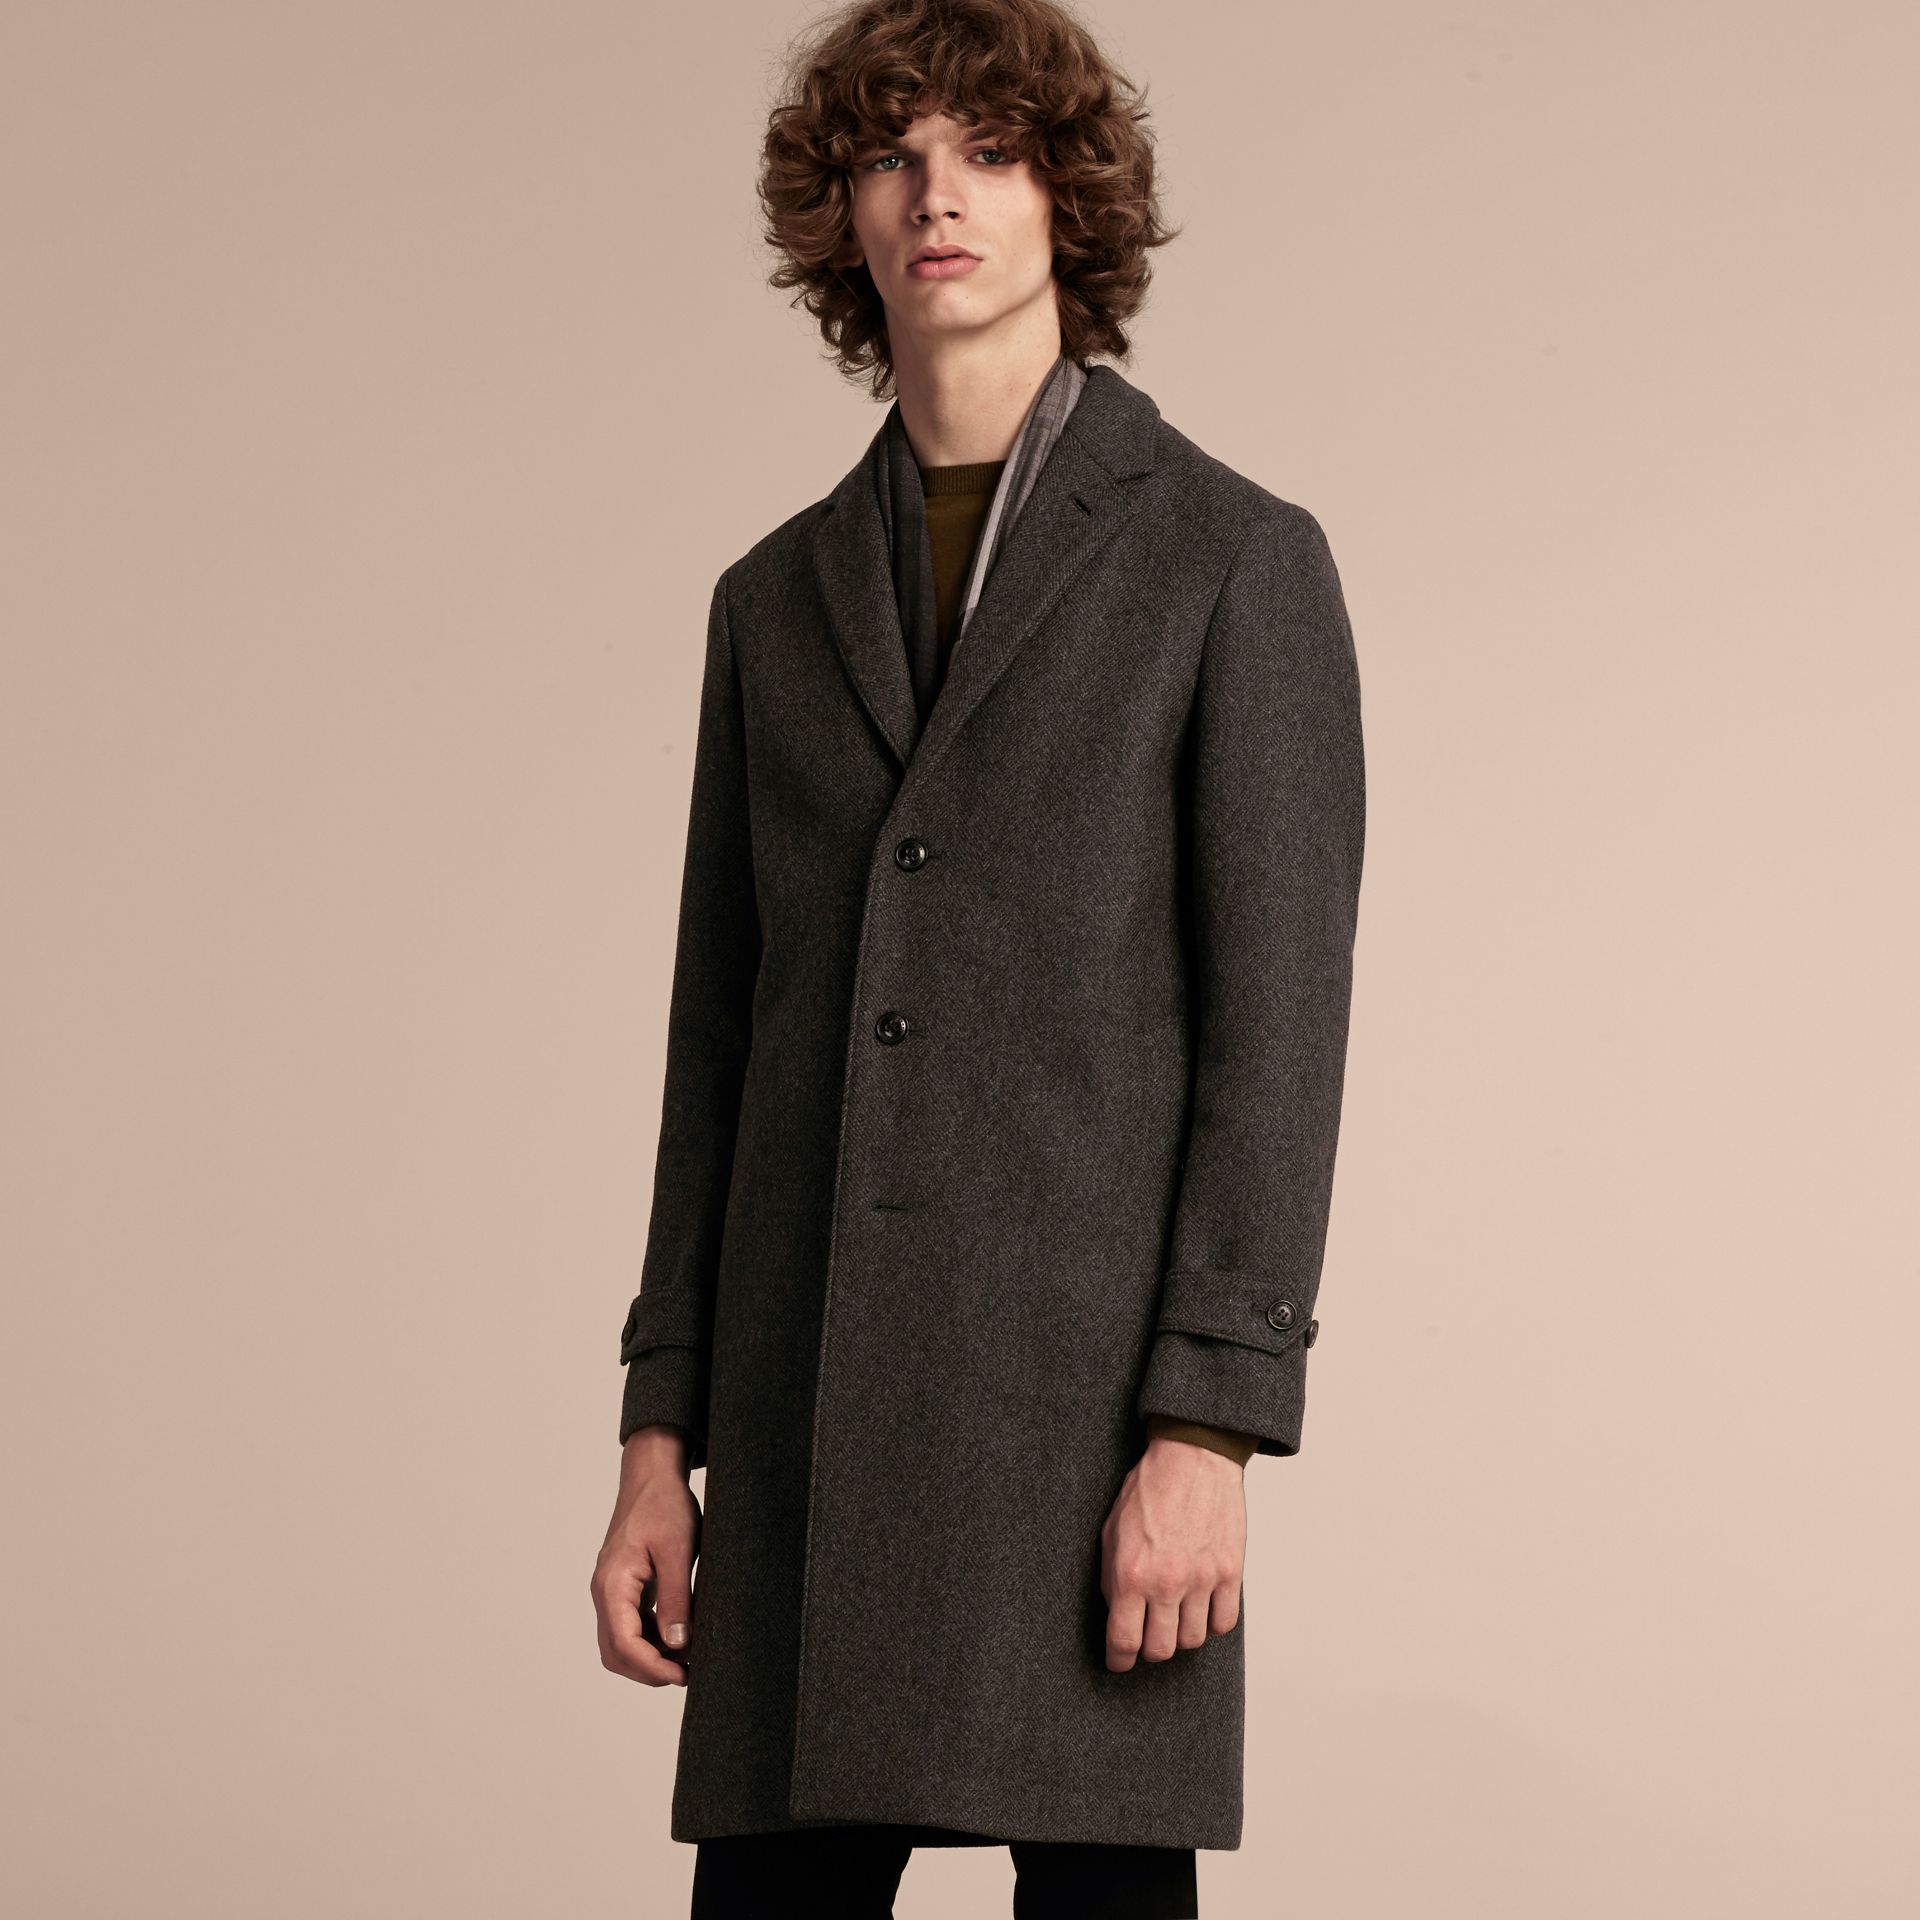 Charcoal melange Single-breasted Wool Blend Tailored Coat - gallery image 7